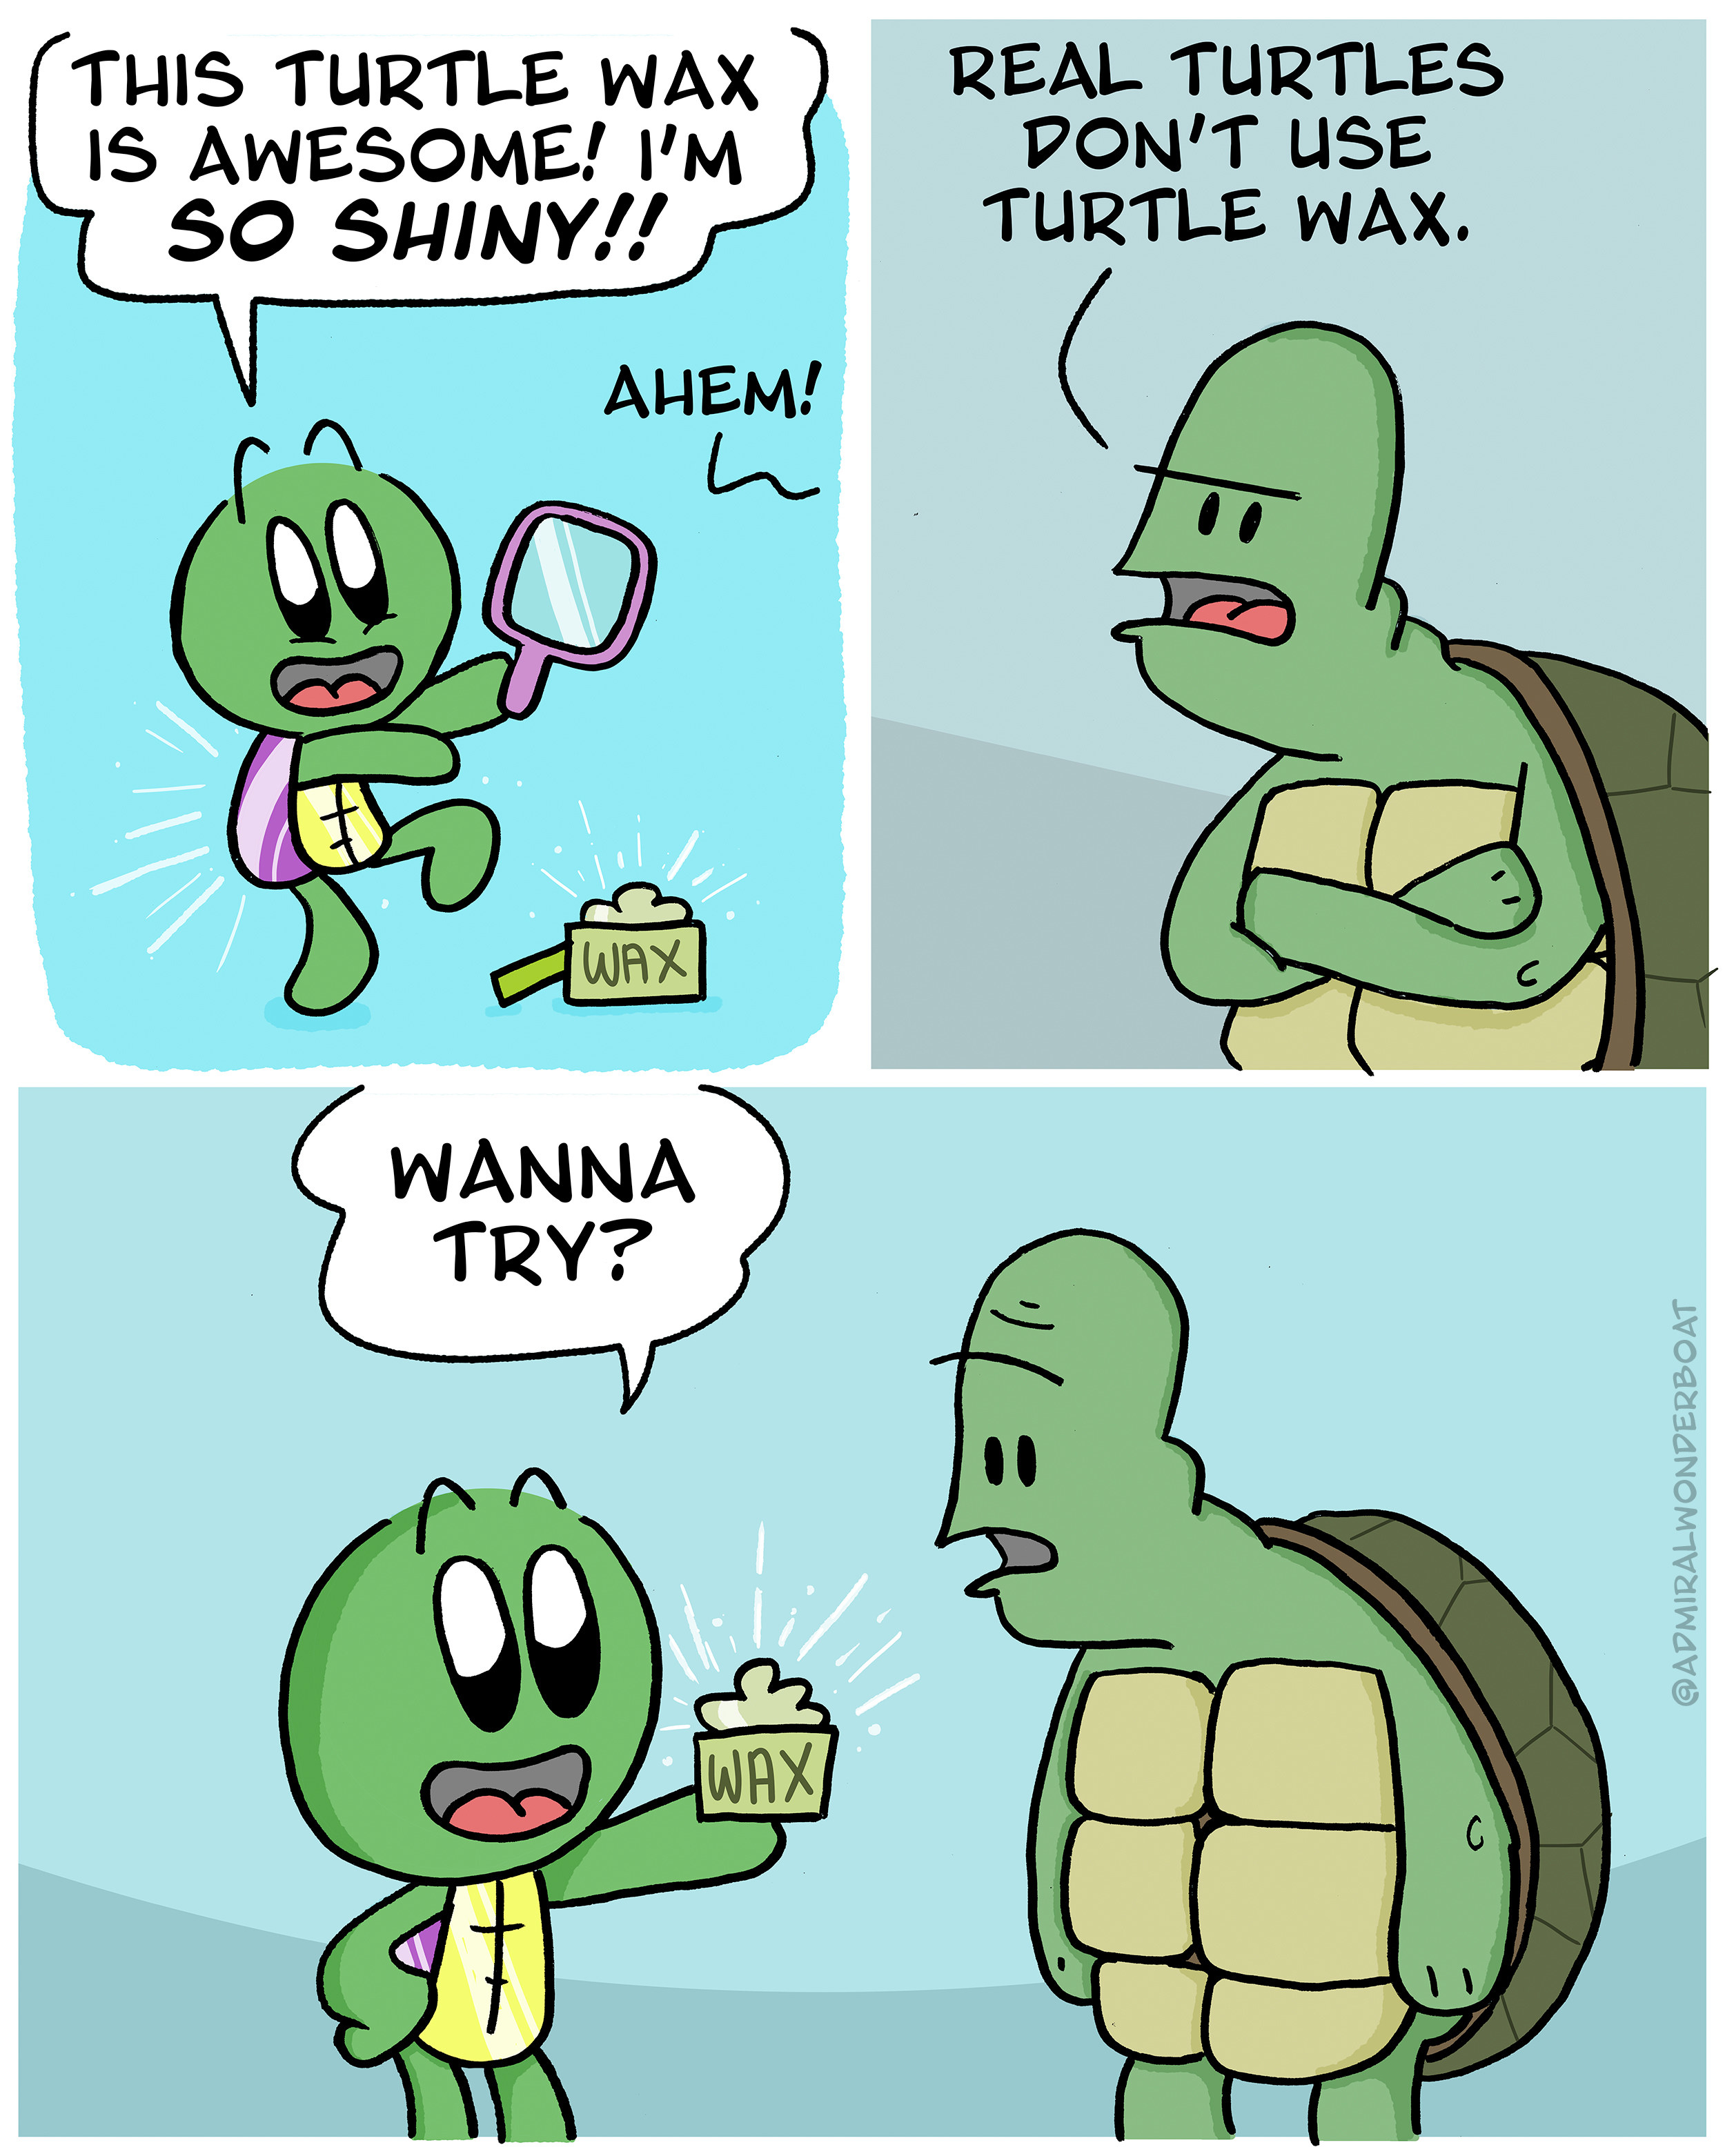 a cartoon turtle uses wax to make their shell nice and shiny, but they get judged for it by an older turtle who thinks real turtles don't do that sort of thing